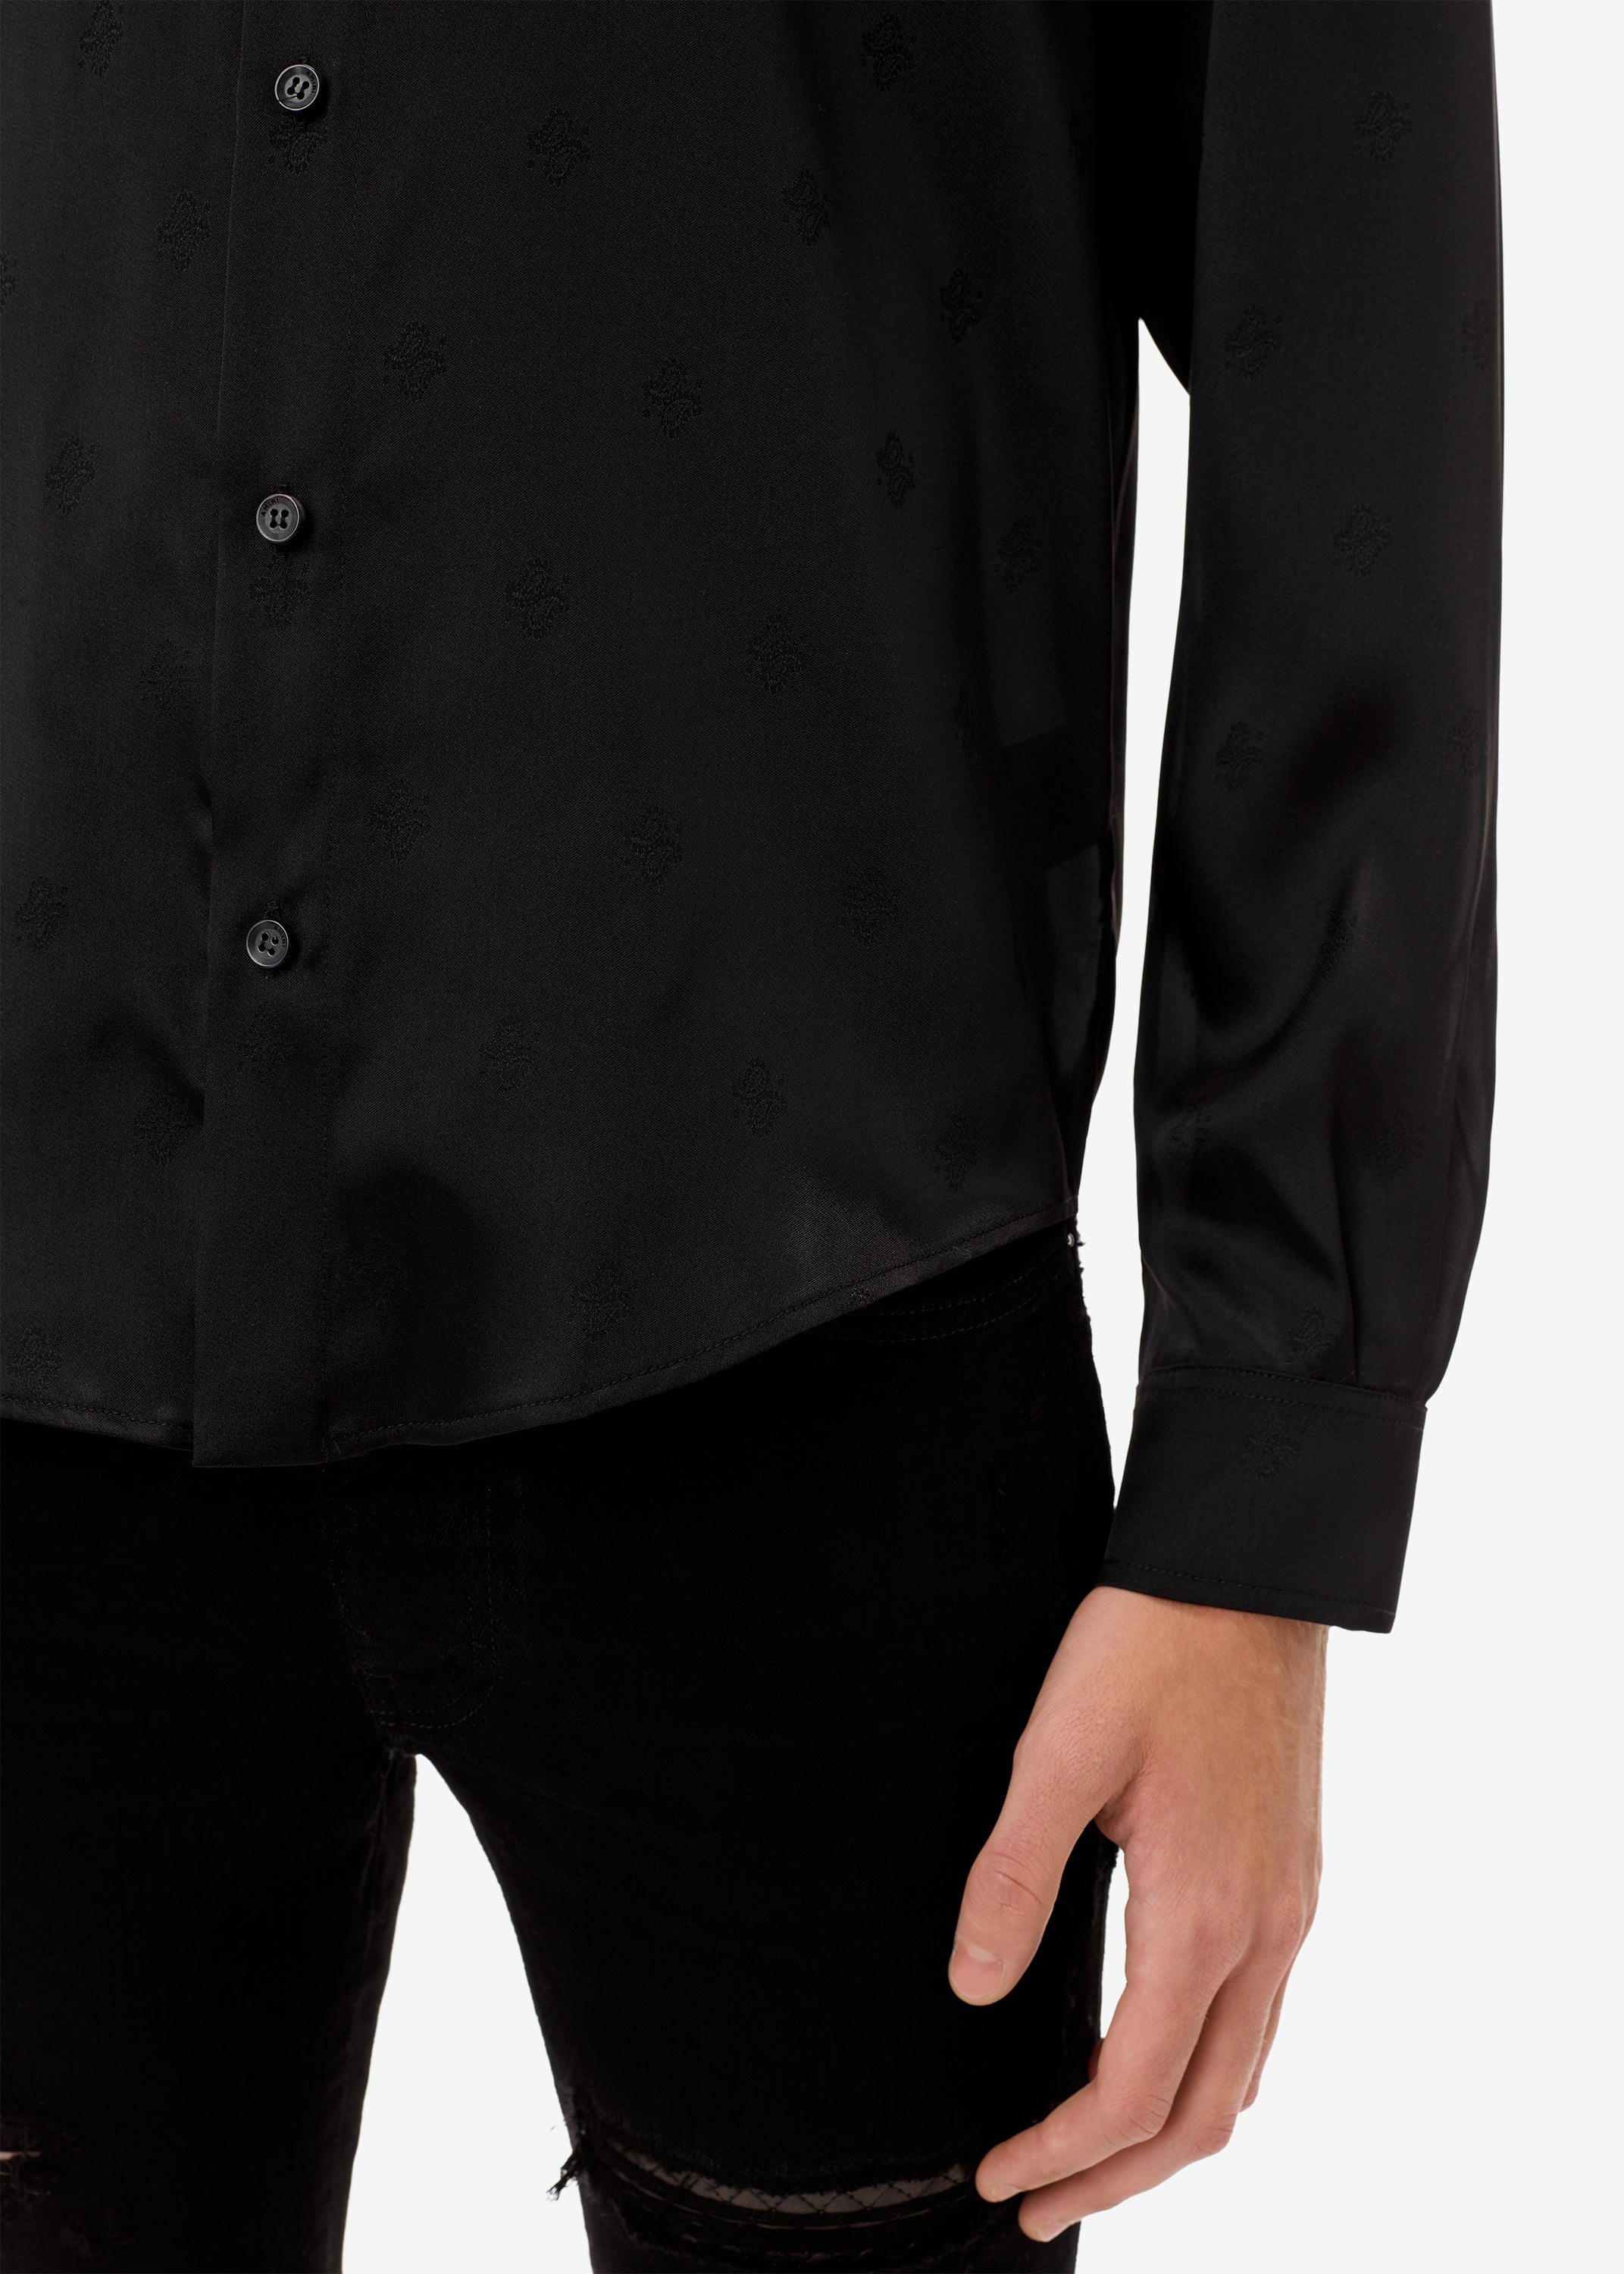 exclusive-micro-paisley-shirt-black-image-4